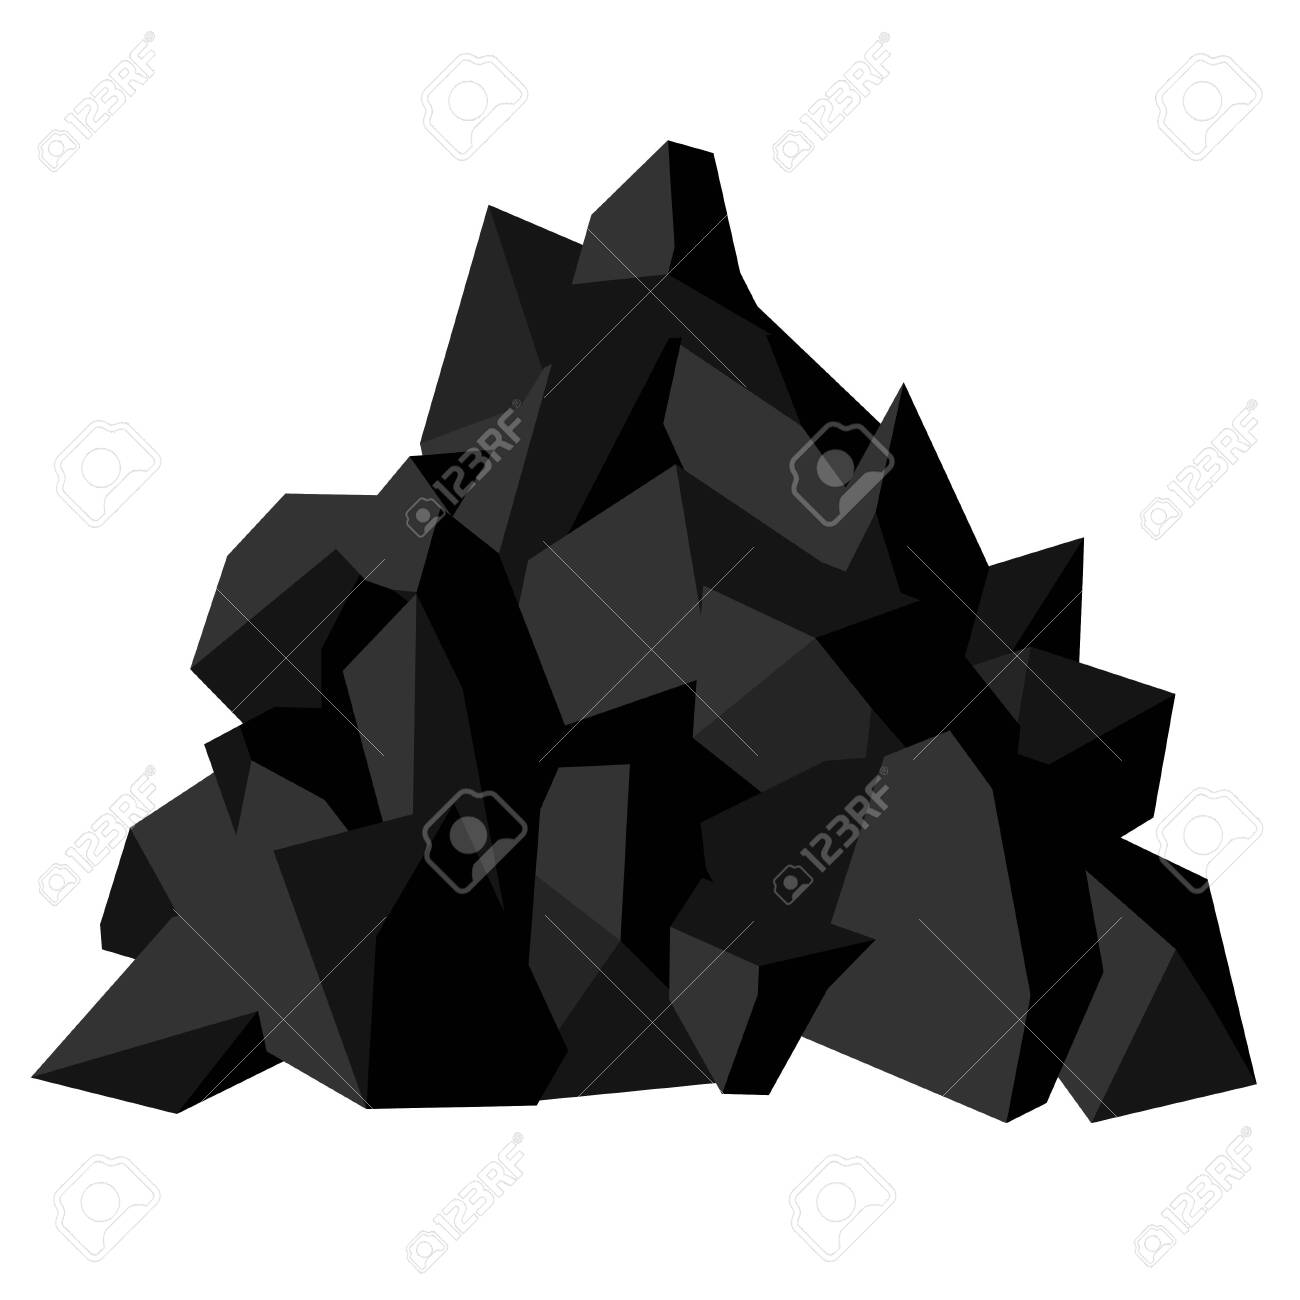 Pile of coal. Pieces of fossil stone, black color. Vector image isolated on white background - 129687774